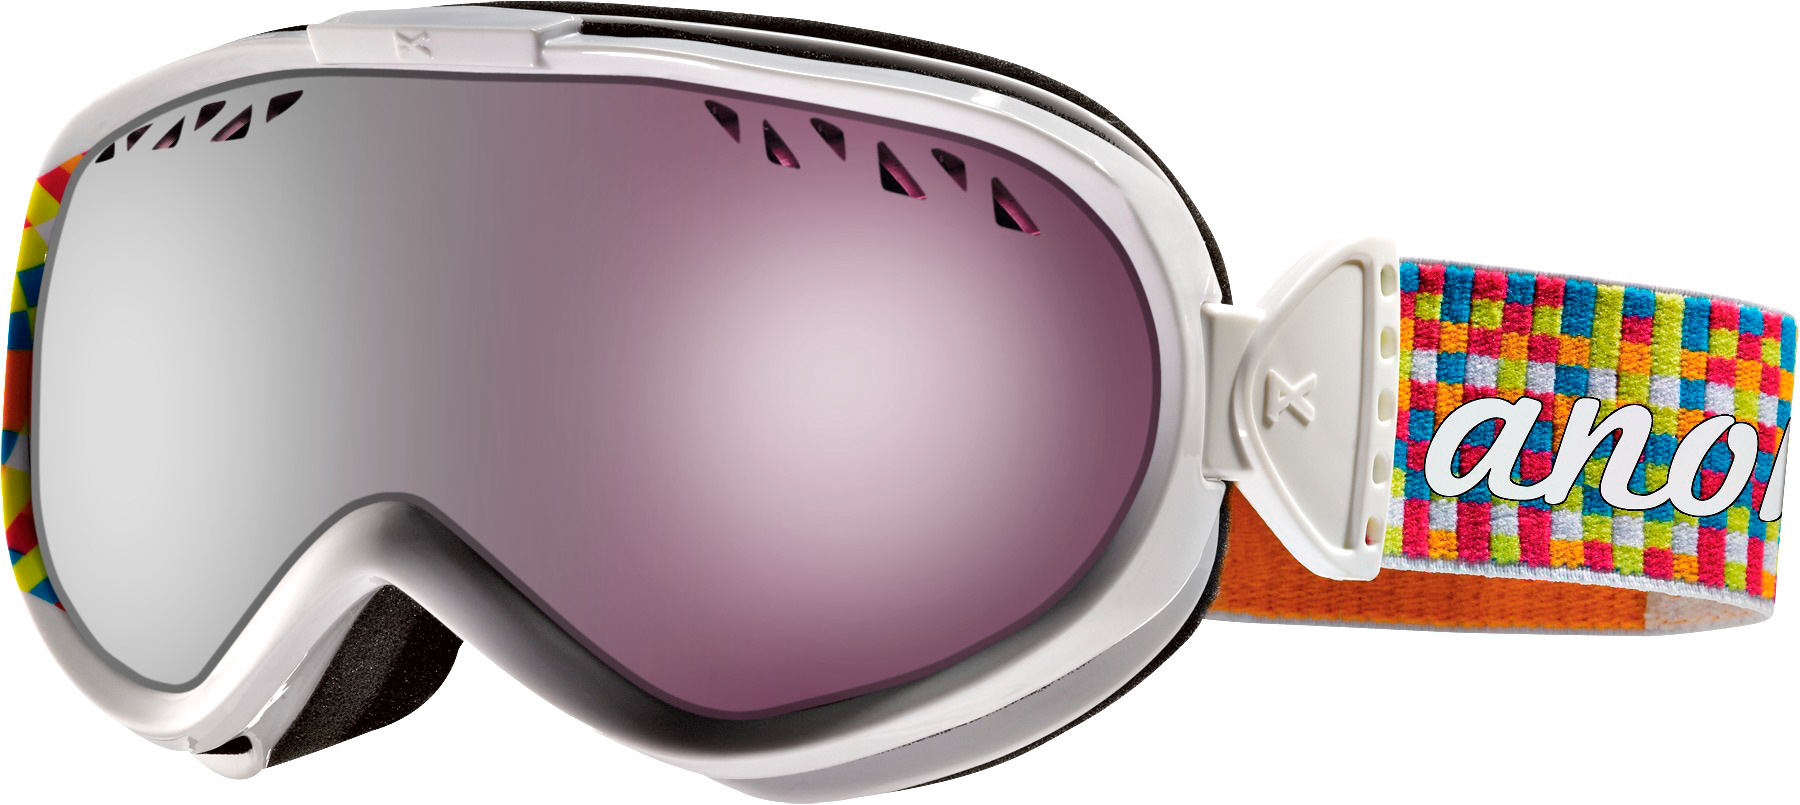 Anon Solace Goggles Weaver/Silver Rose Lens - Women's